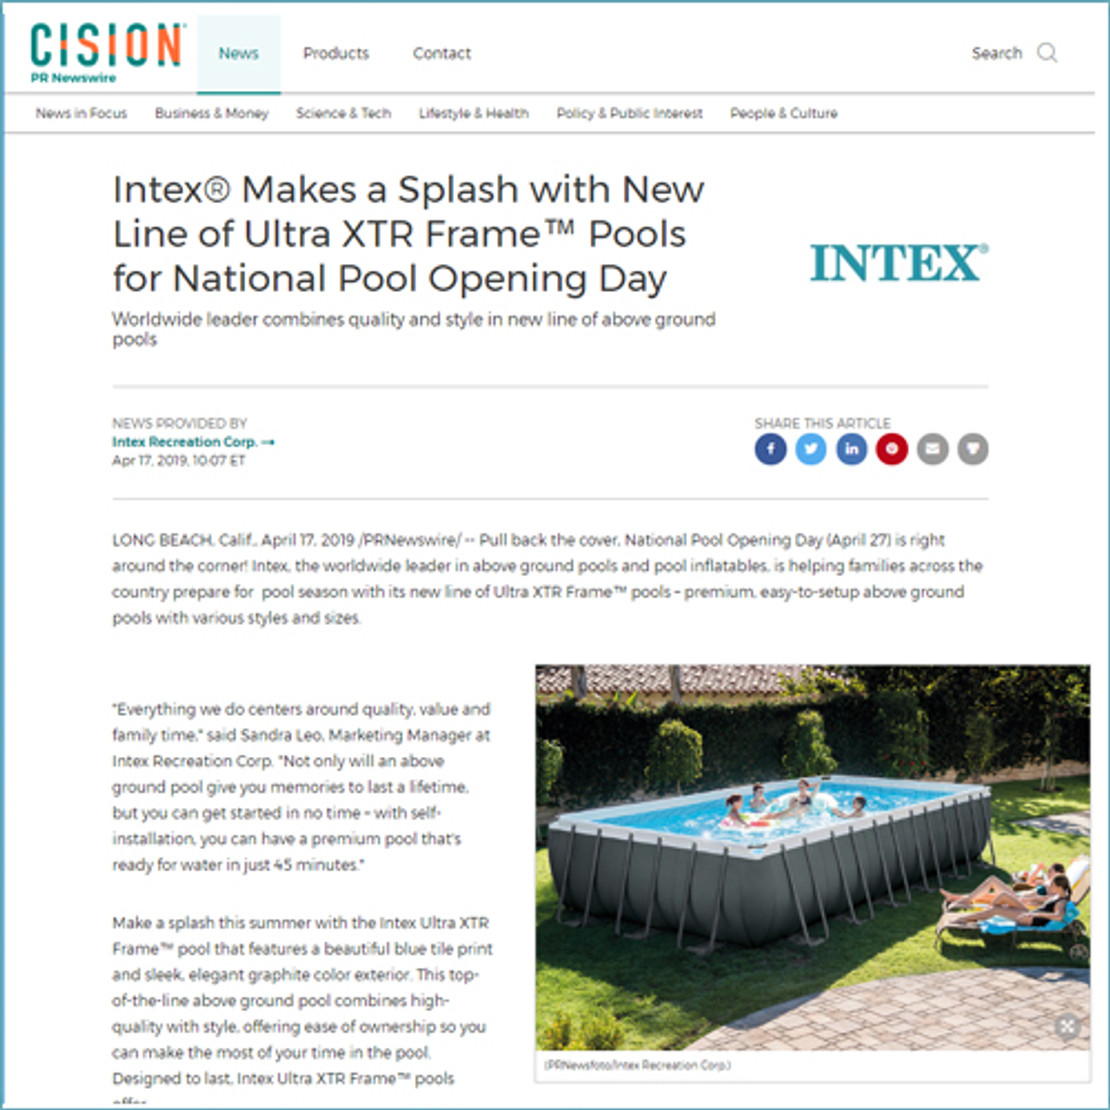 4/17/2019 - Intex® Makes a Splash with New Line of Ultra XTR ...